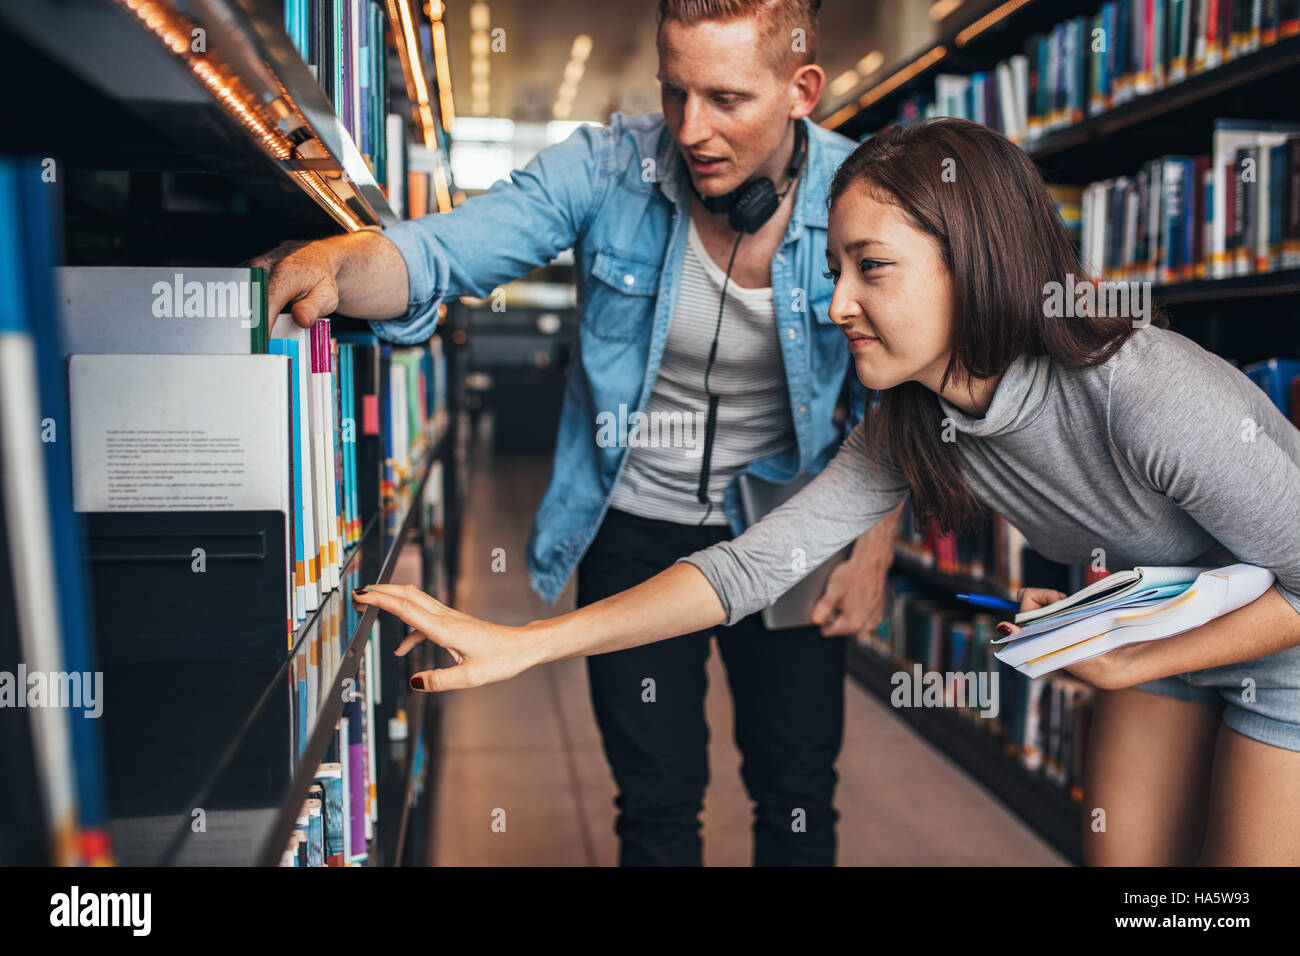 Young students finding reference books in university library. Man and woman finding information for their studies. - Stock Image